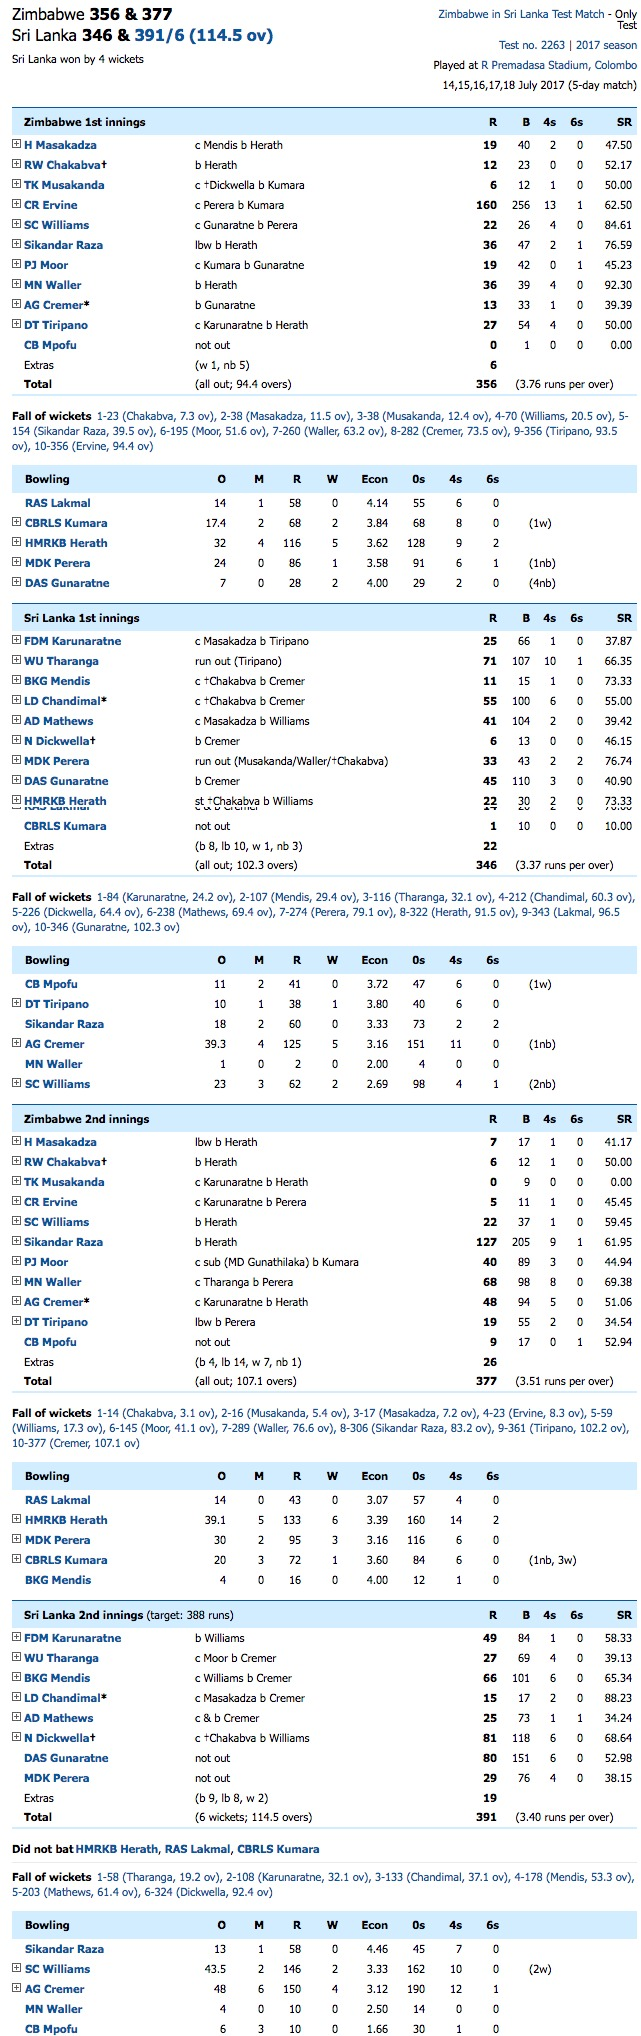 SL 391 6 114.5 ov MDK Perera 29 DAS Gunaratne 80 SC Williams 2 146 Match over Live Scorecard ESPN Cricinfo